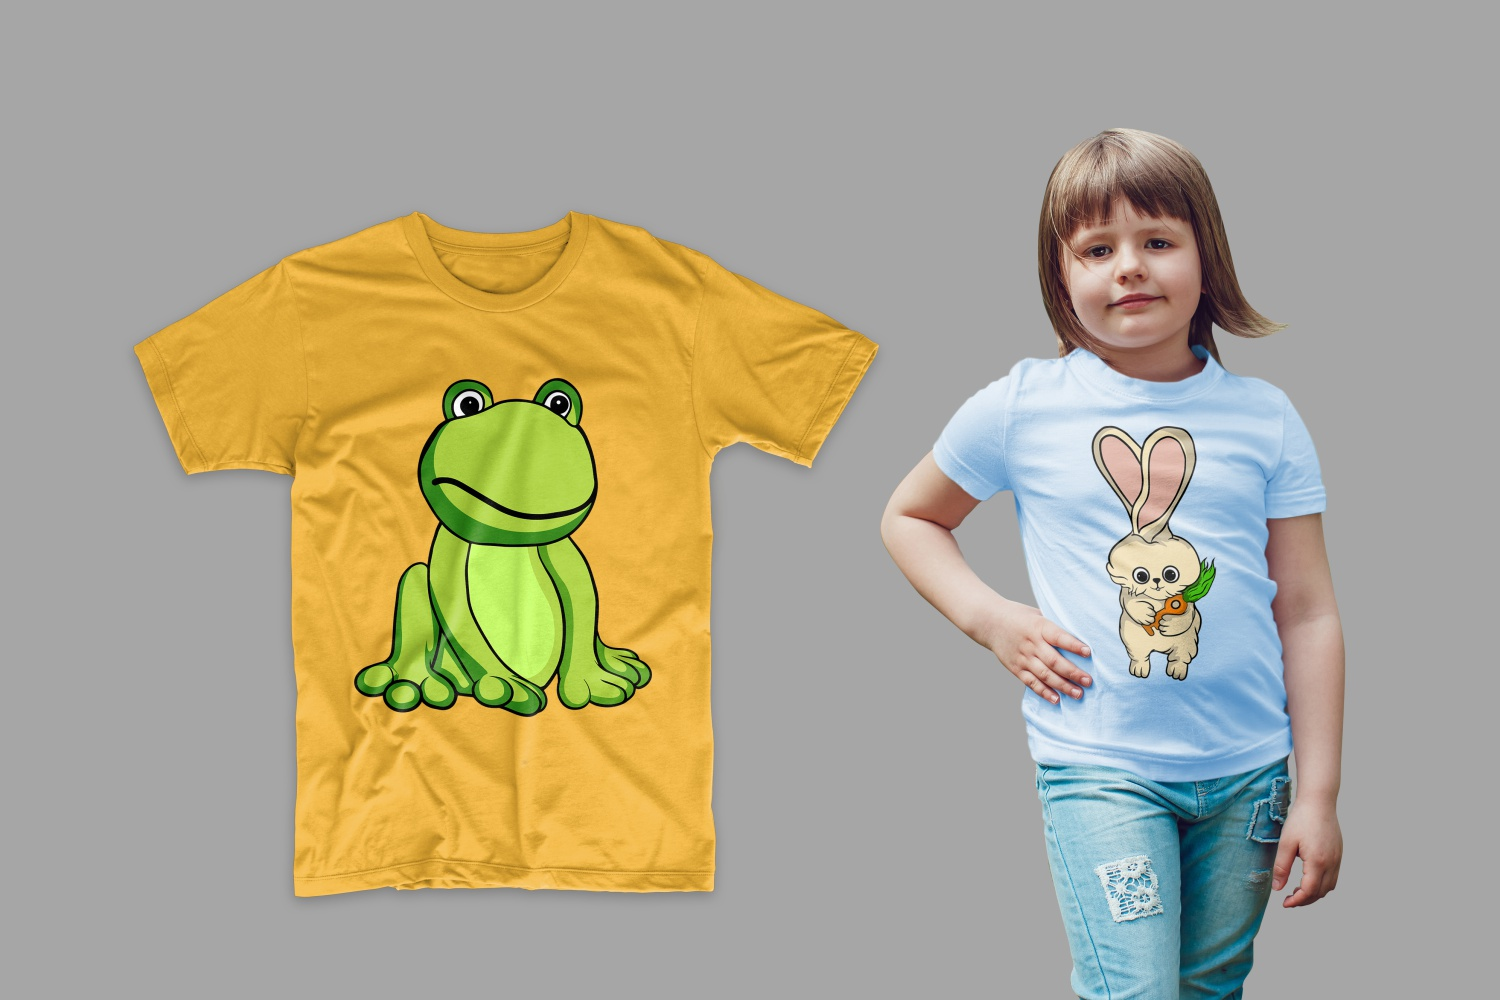 The T-shirt is yellow with a green frog and blue with a bunny.